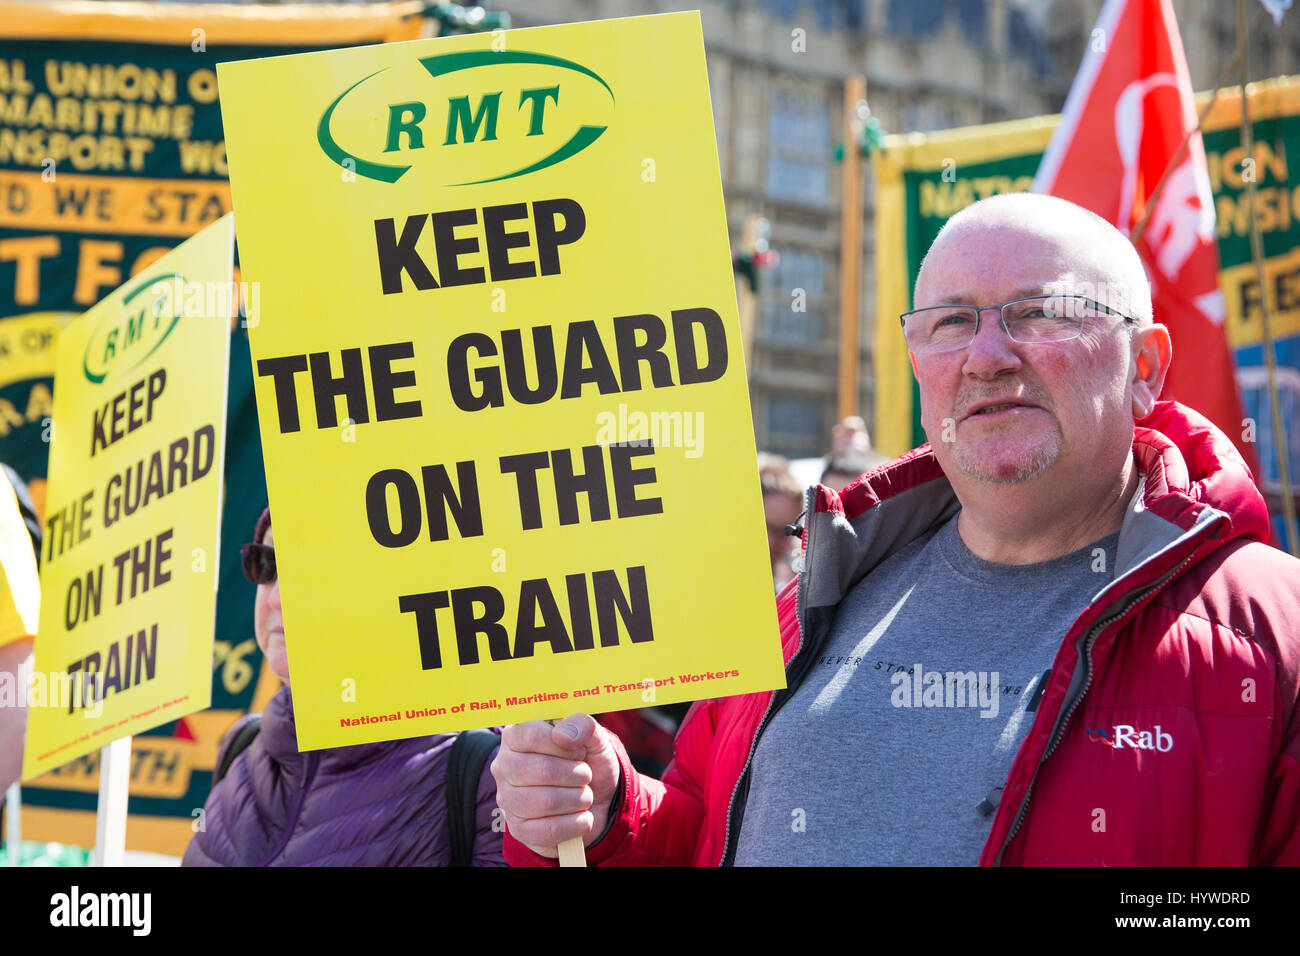 London, UK. 26th Apr, 2017. Members of the RMT union protest outside Parliament to mark the first anniversary of - Stock Image